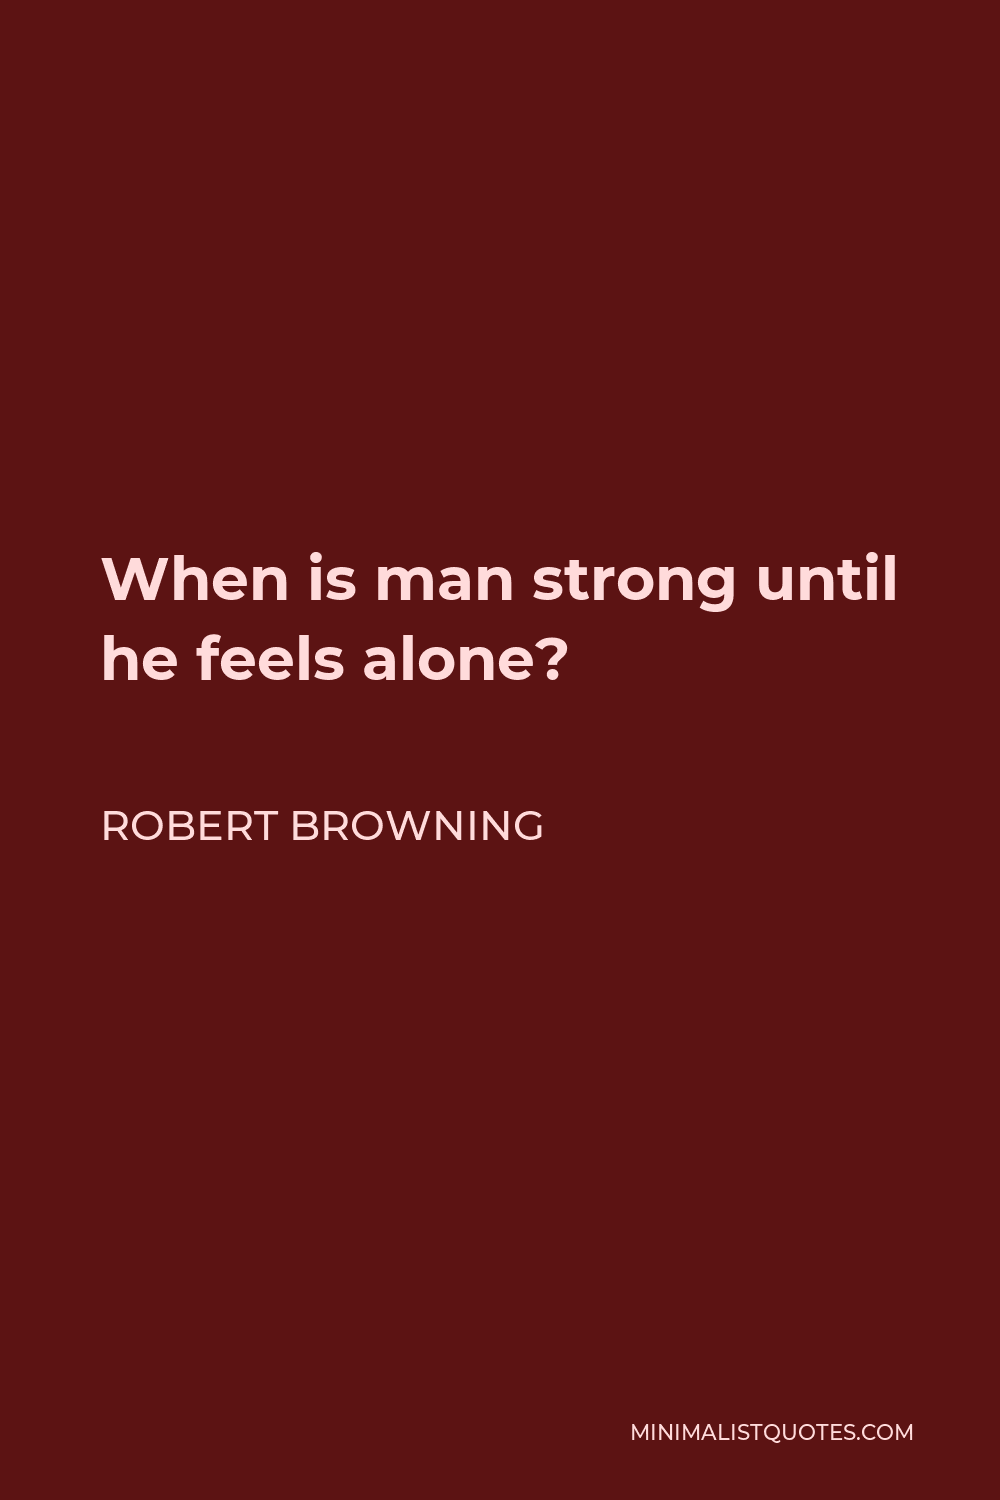 Robert Browning Quote - When is man strong until he feels alone?